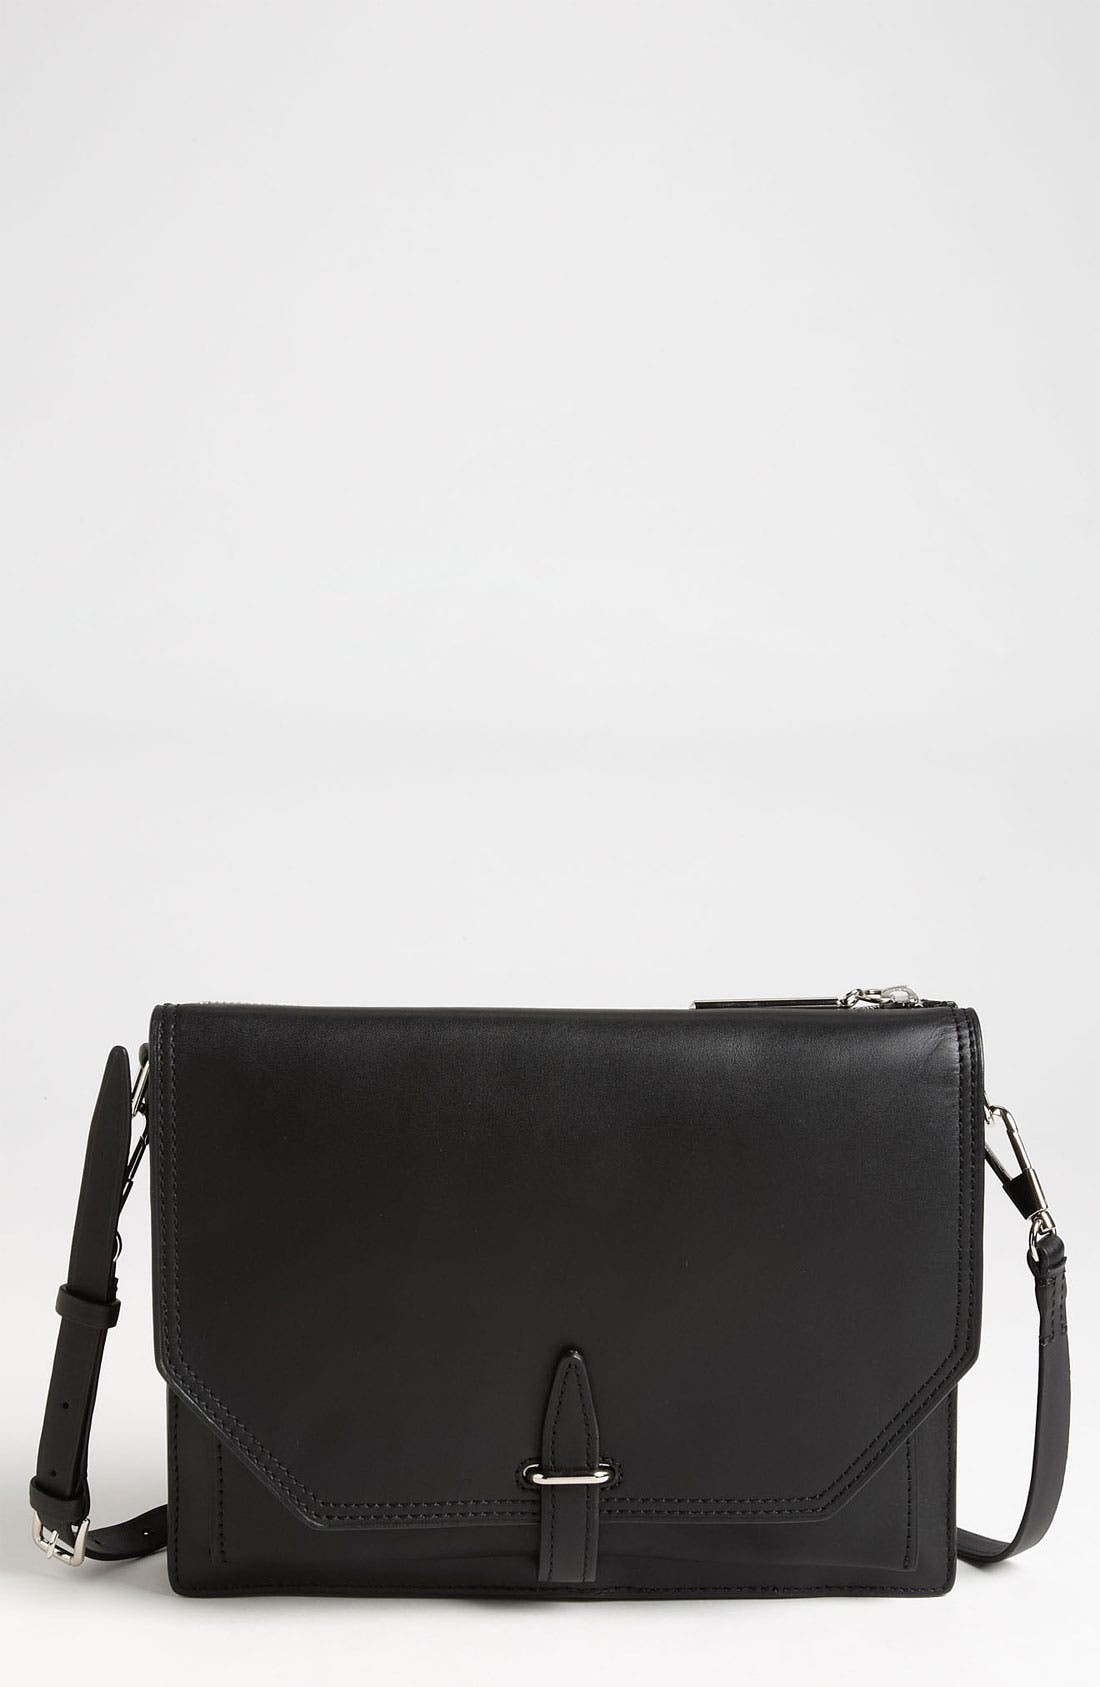 Main Image - 3.1 Phillip Lim Leather Crossbody Bag